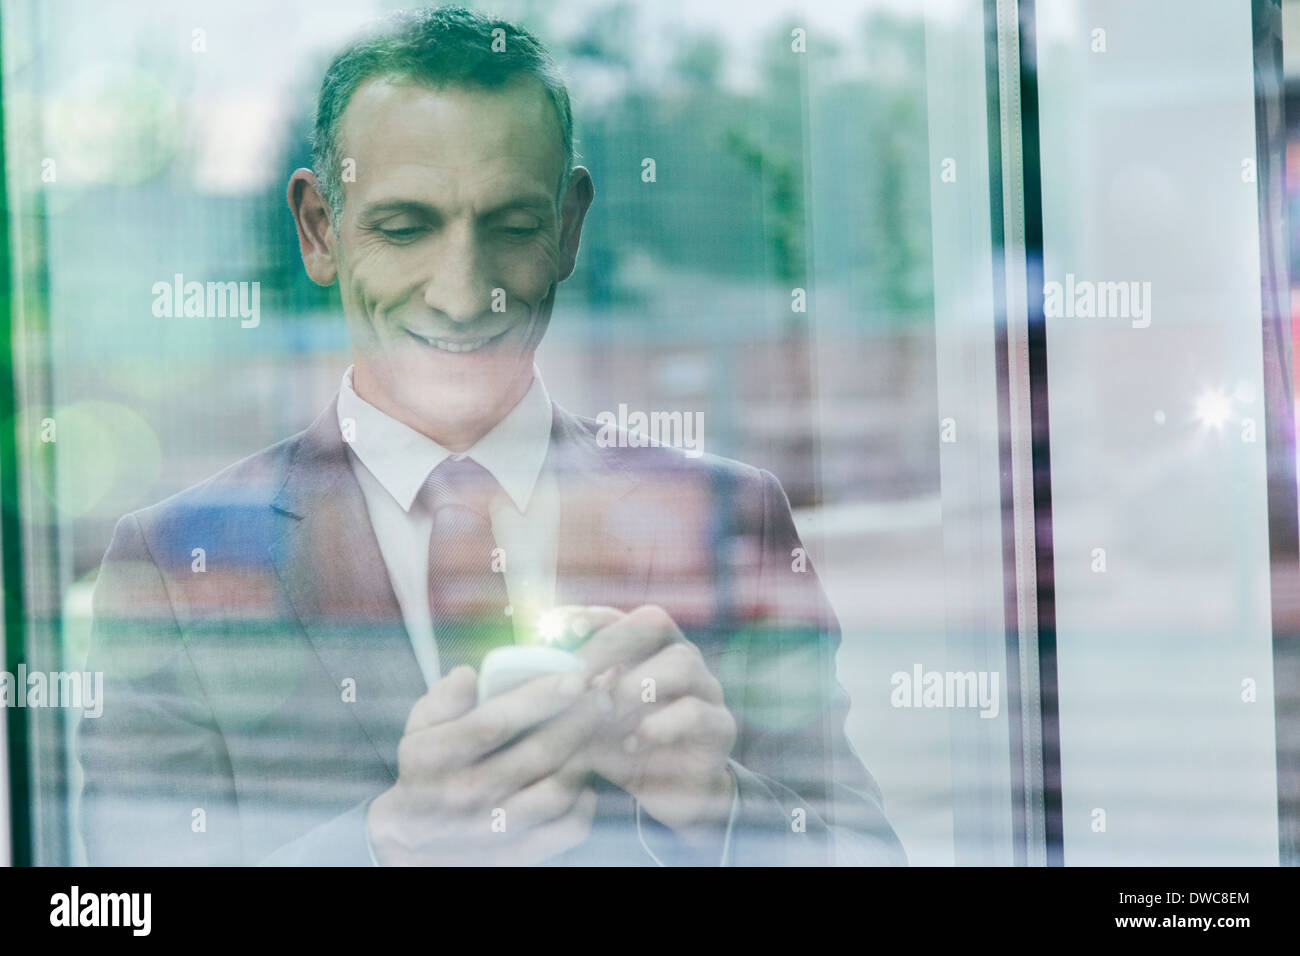 Businessman with glowing finger using smartphone touchscreen - Stock Image